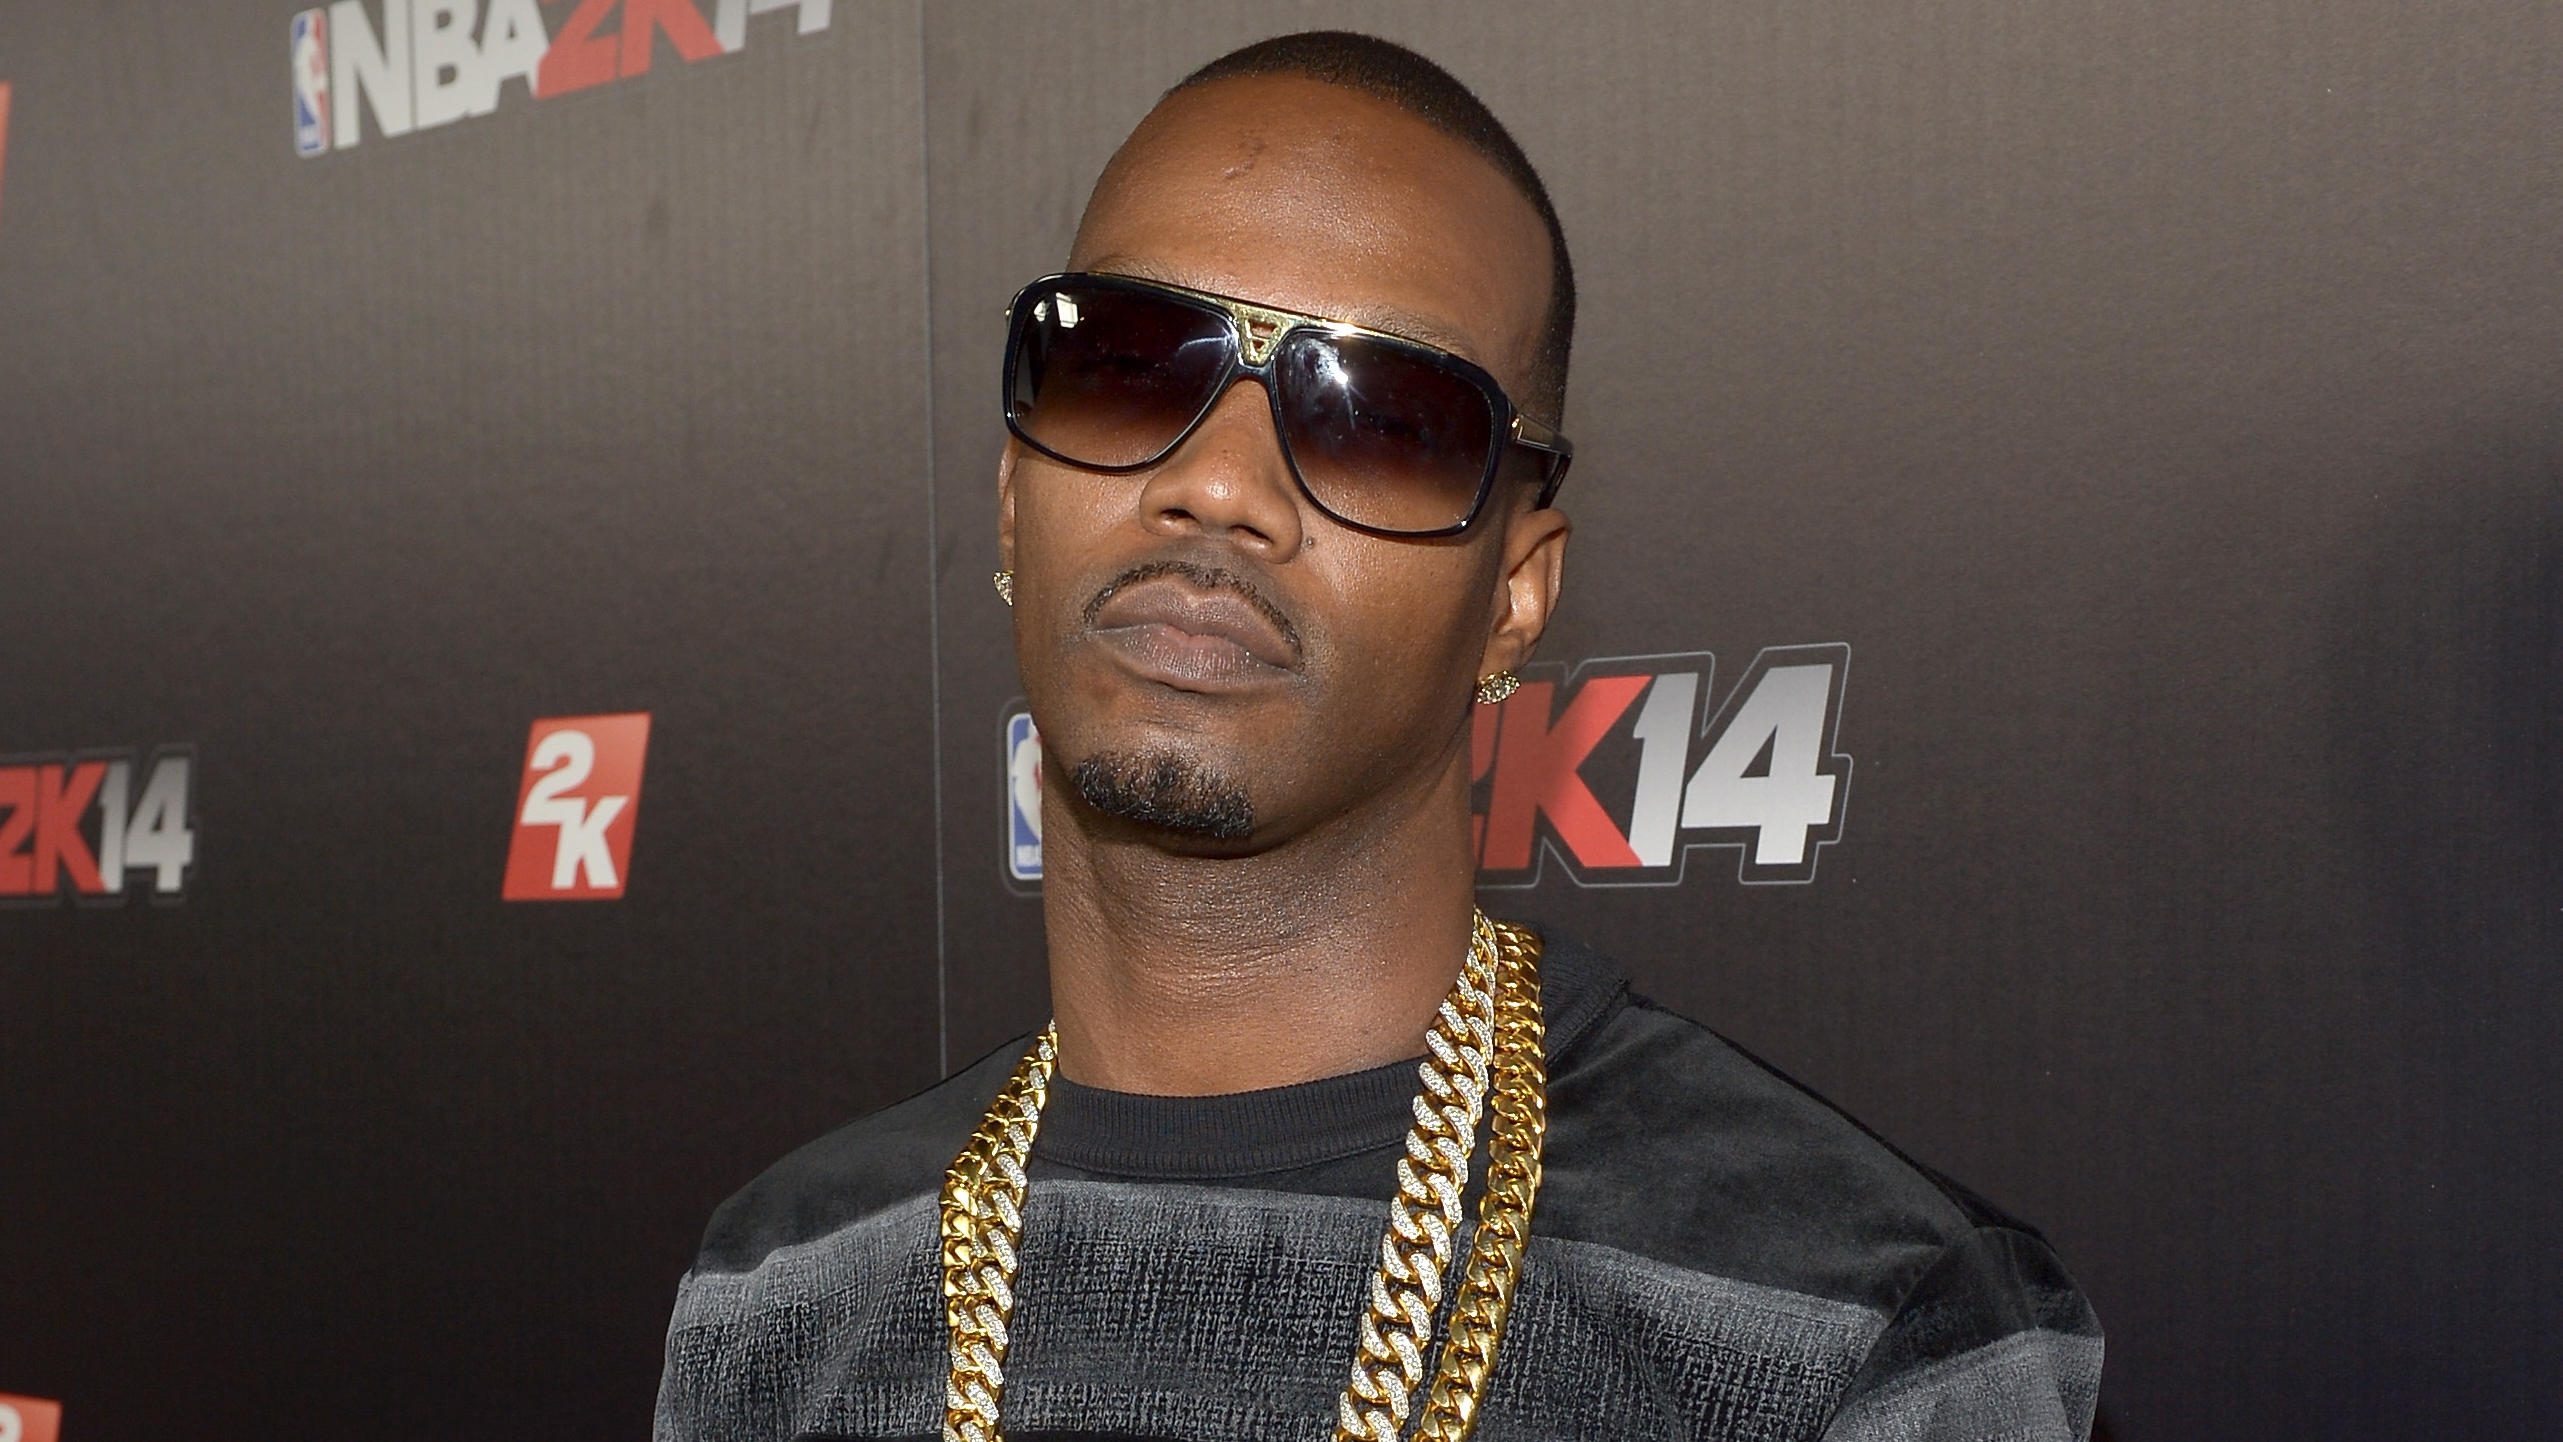 Juicy J feat. G.O.D. – Breathe (Video)